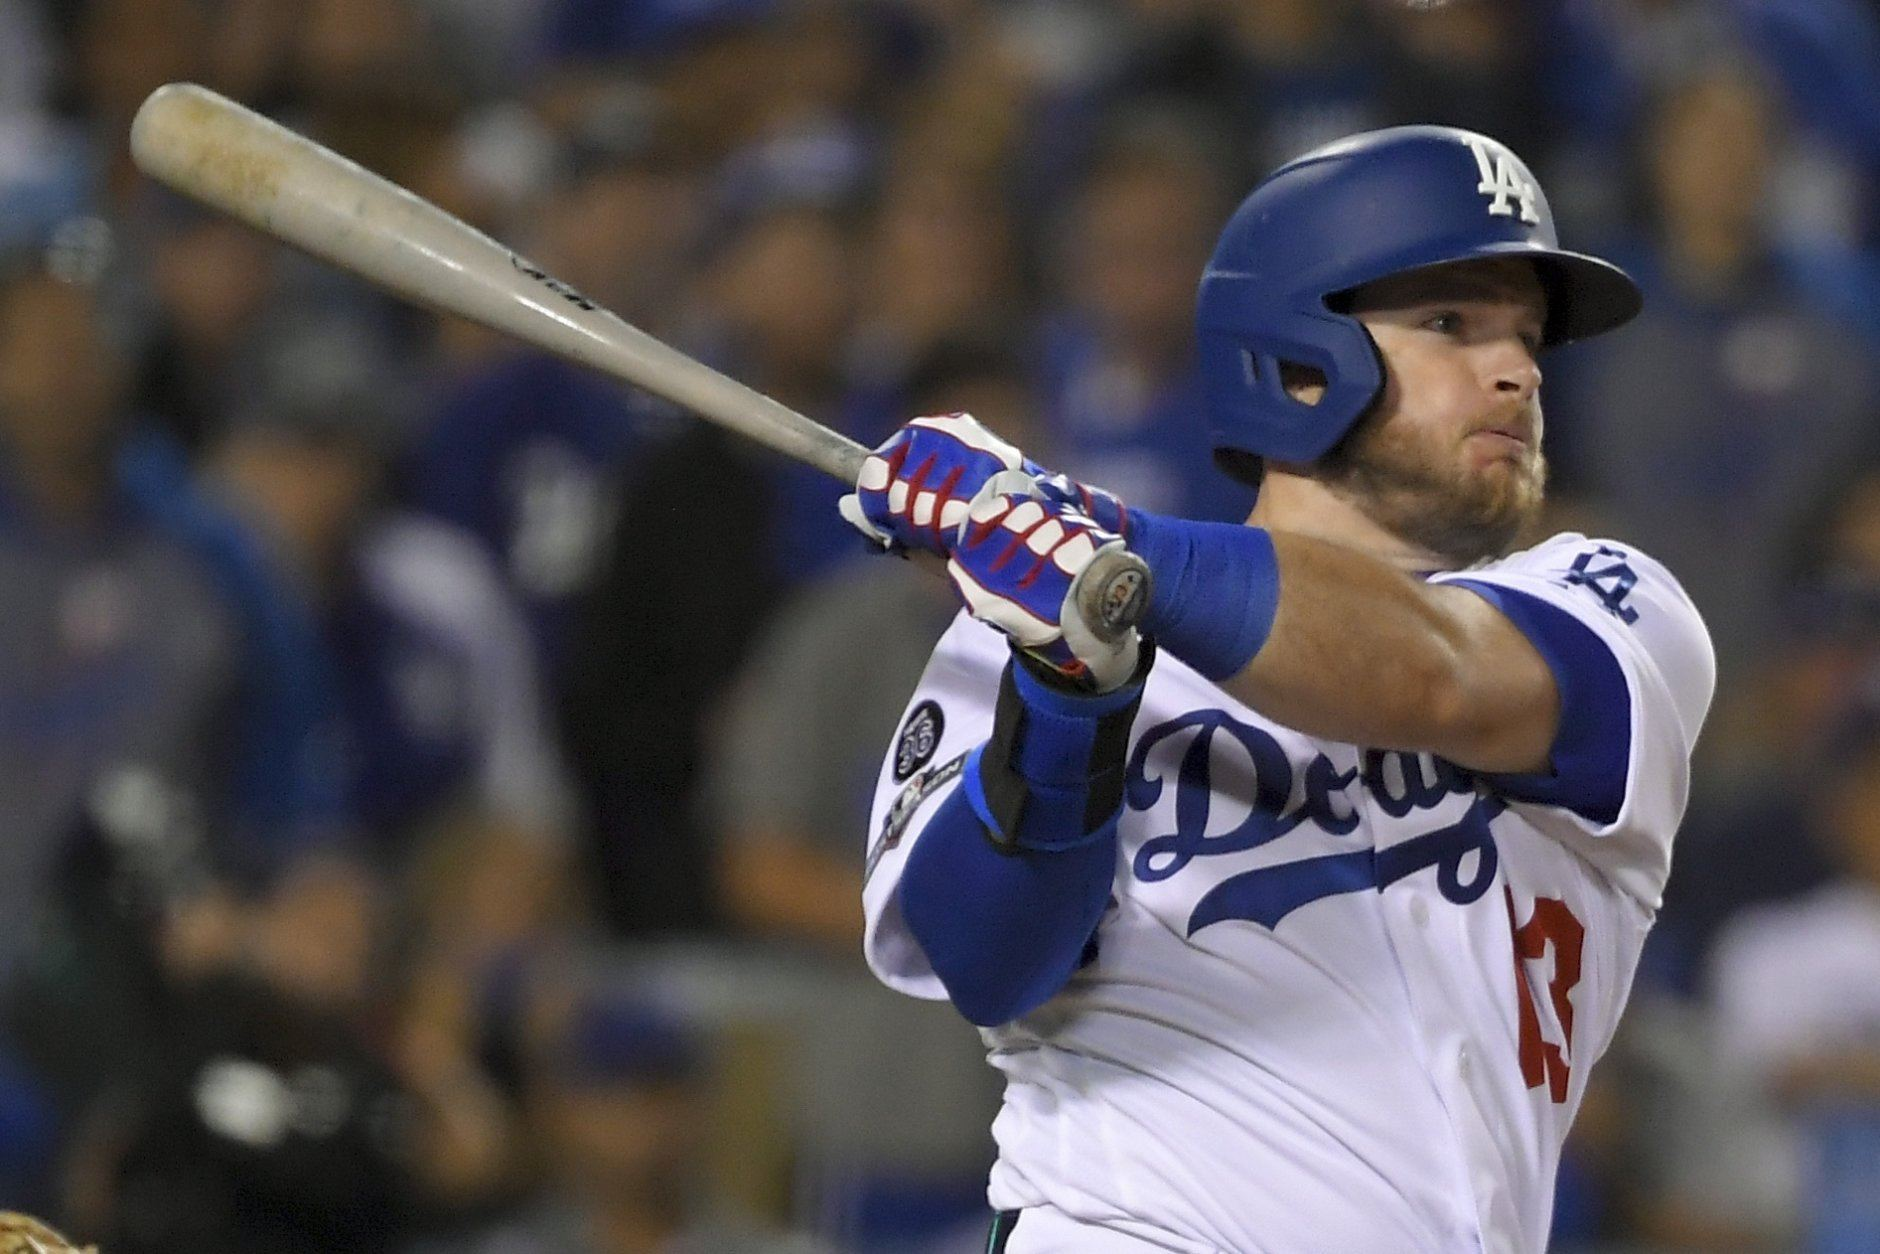 Los Angeles Dodgers' Max Muncy watches his two-run single against the Washington Nationals during the seventh inning of Game 1 in baseball's National League Divisional Series on Thursday, Oct. 3, 2019, in Los Angeles. (AP Photo/Mark J. Terrill)